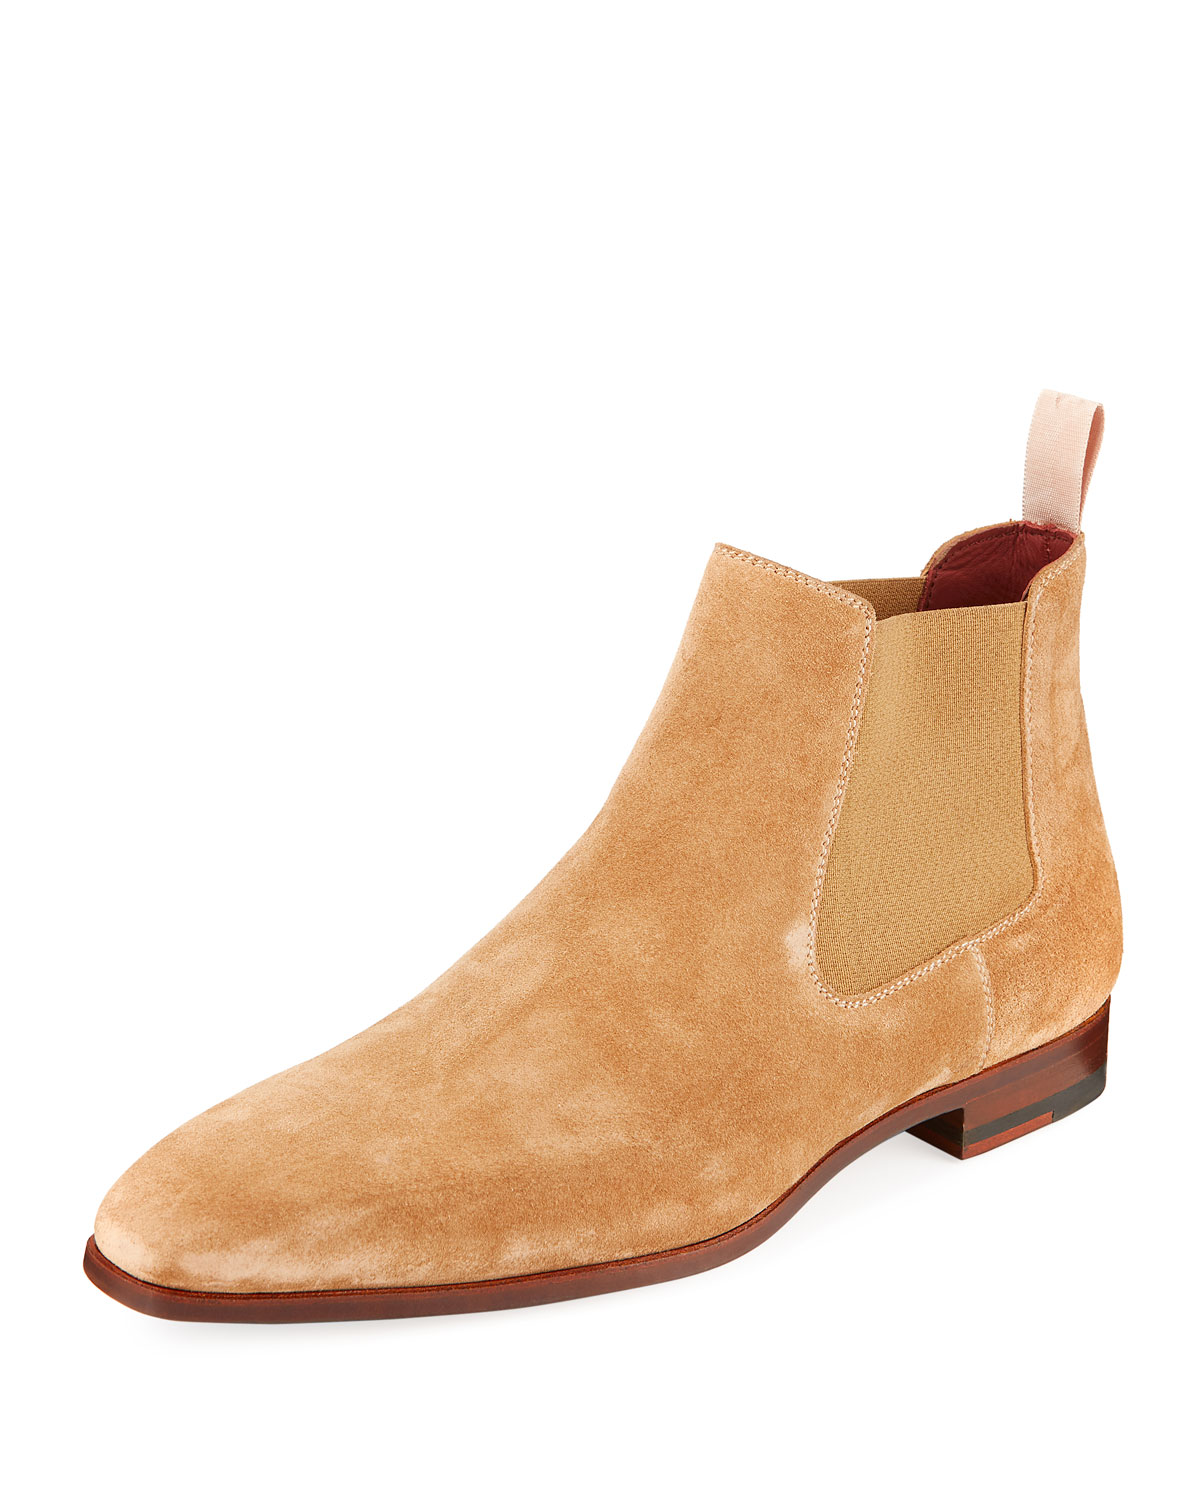 Suede Low Gored Chelsea Boots